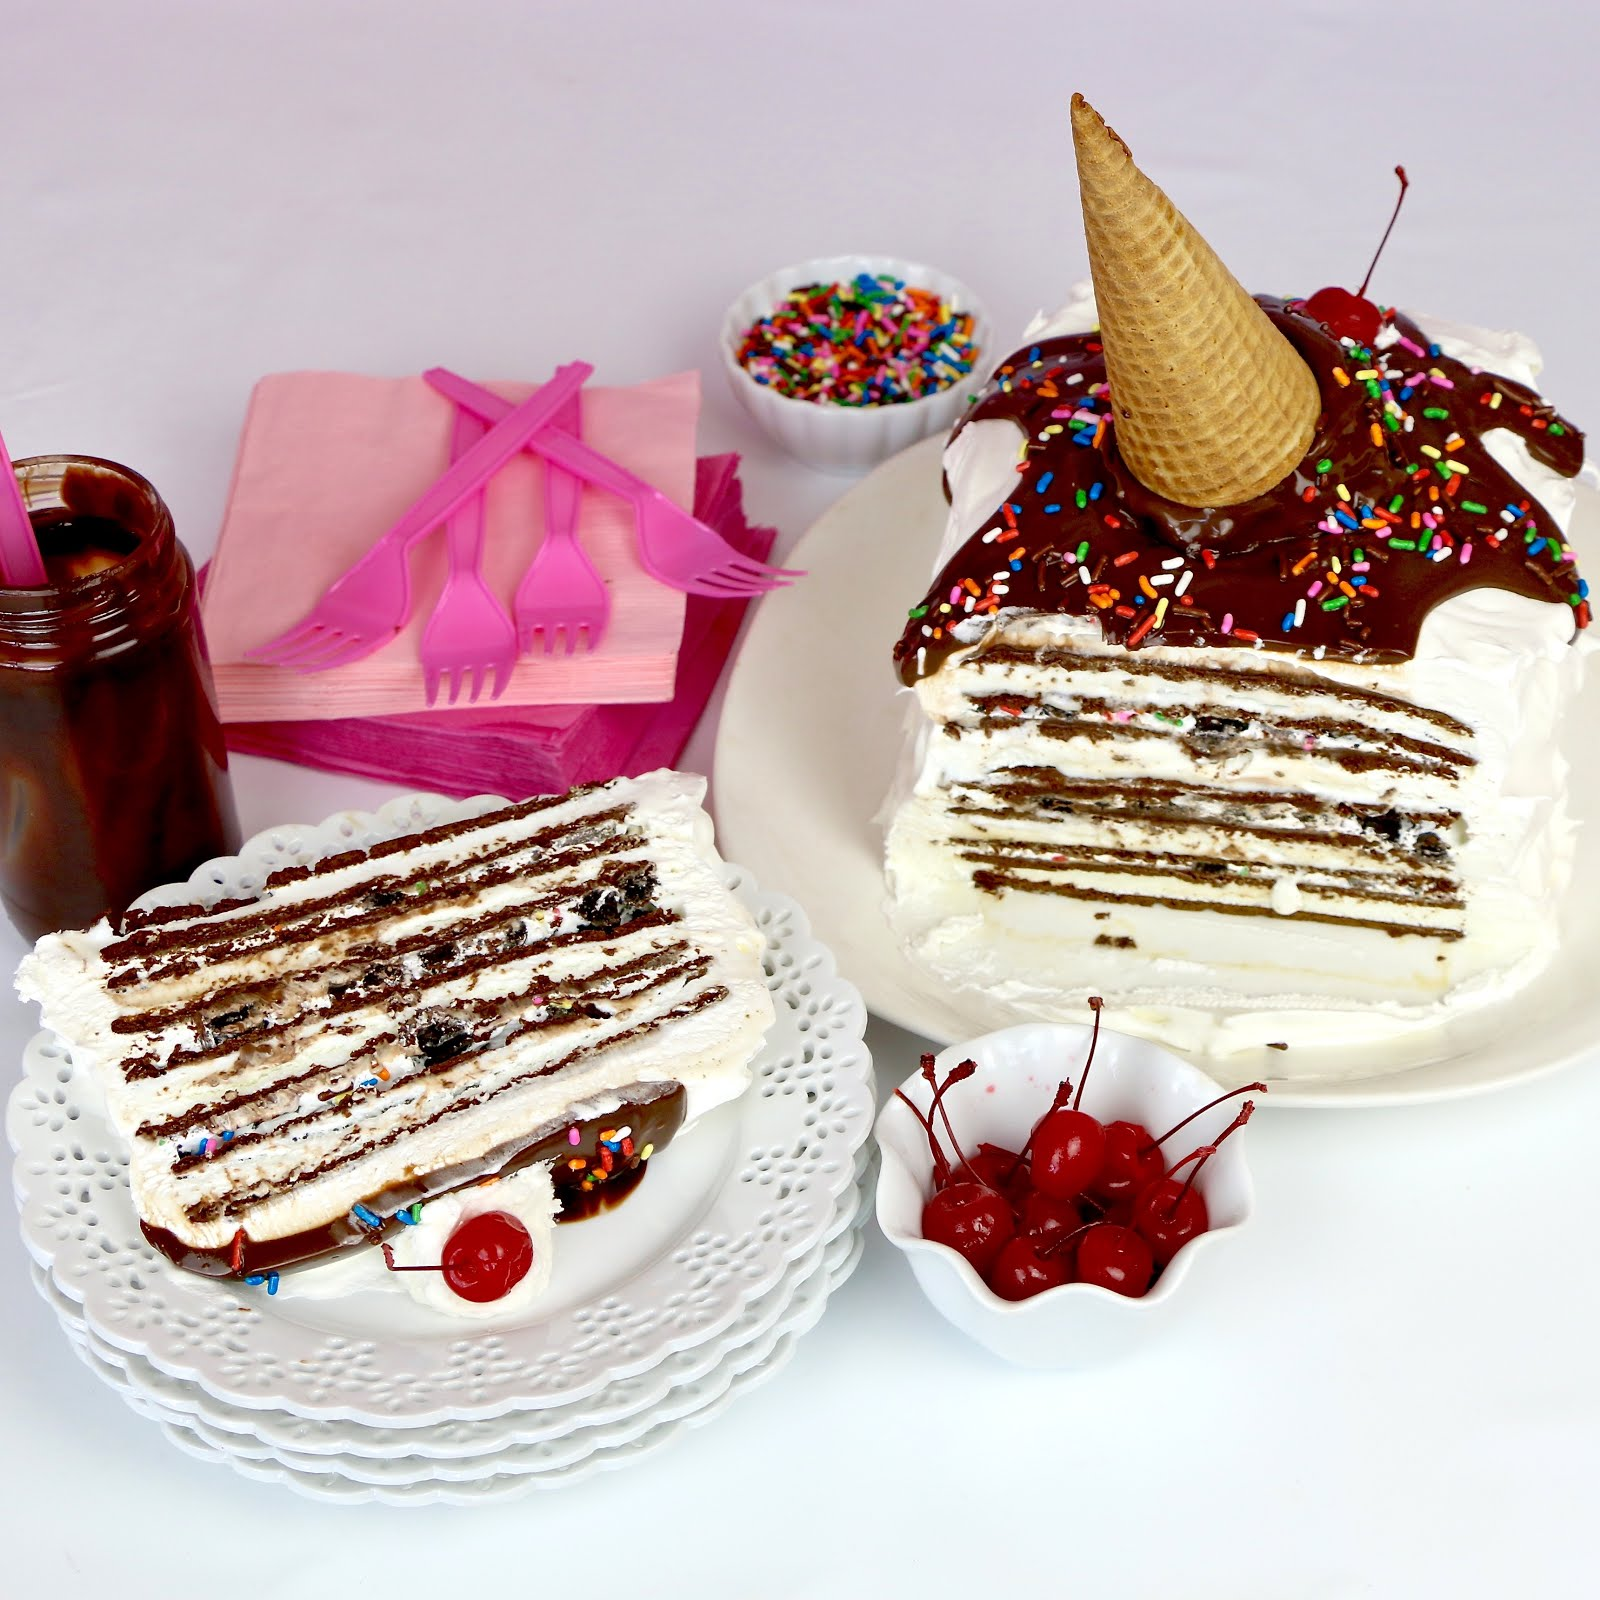 Video easy no bake ice cream sandwich cake with melting cone easy no bake ice cream sandwich cake with melting cone click here to watch the video on youtube ccuart Gallery